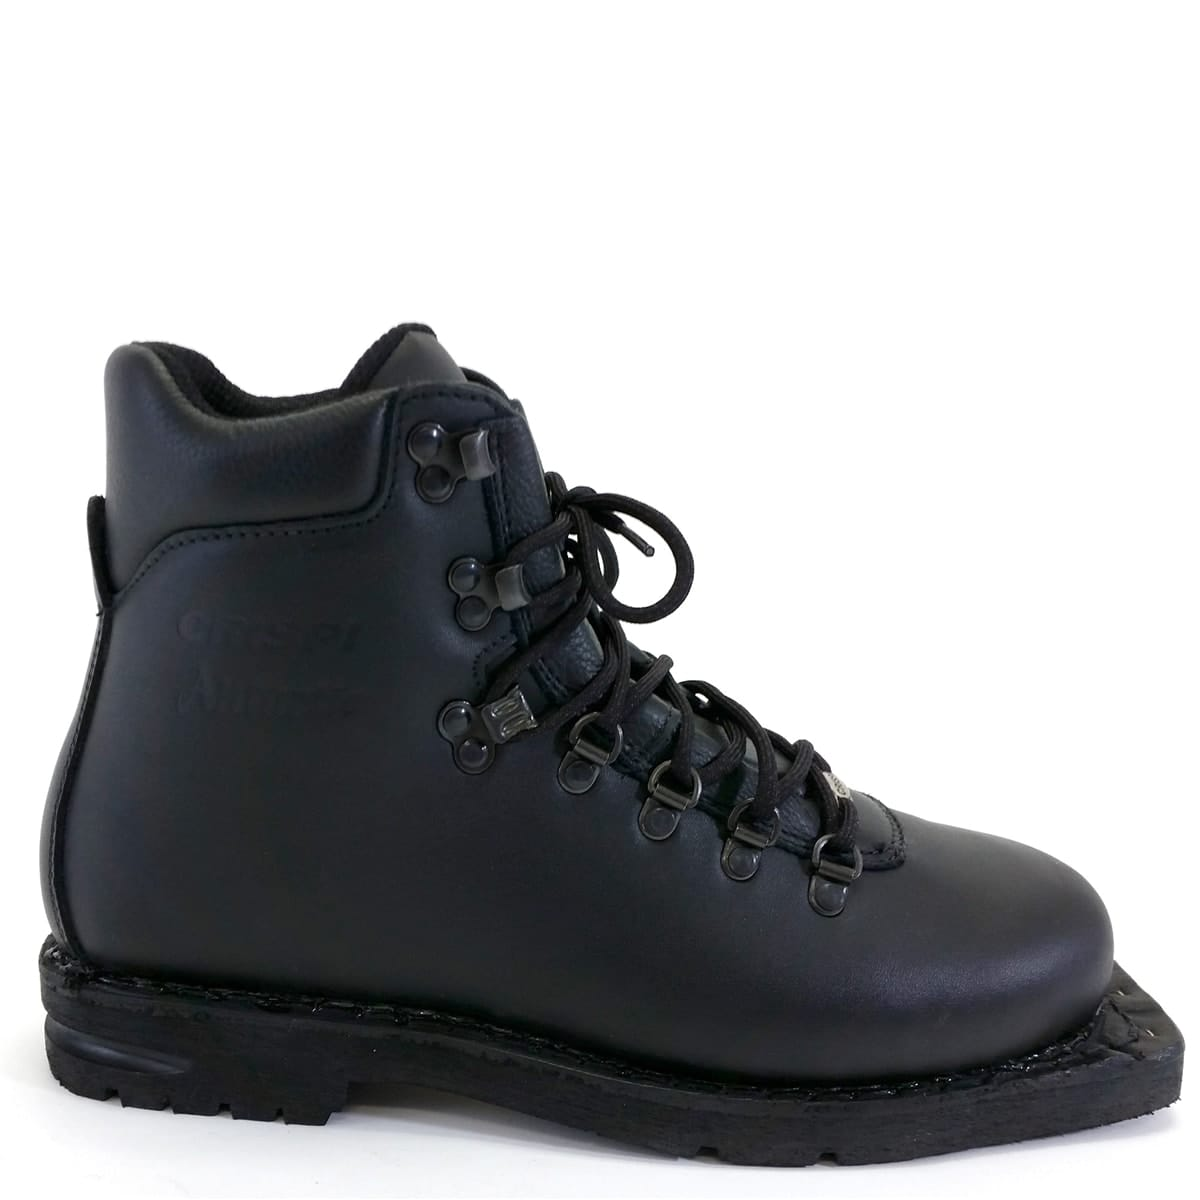 14c3f7f4e88 Antartic Leather 75mm Telemark Boot